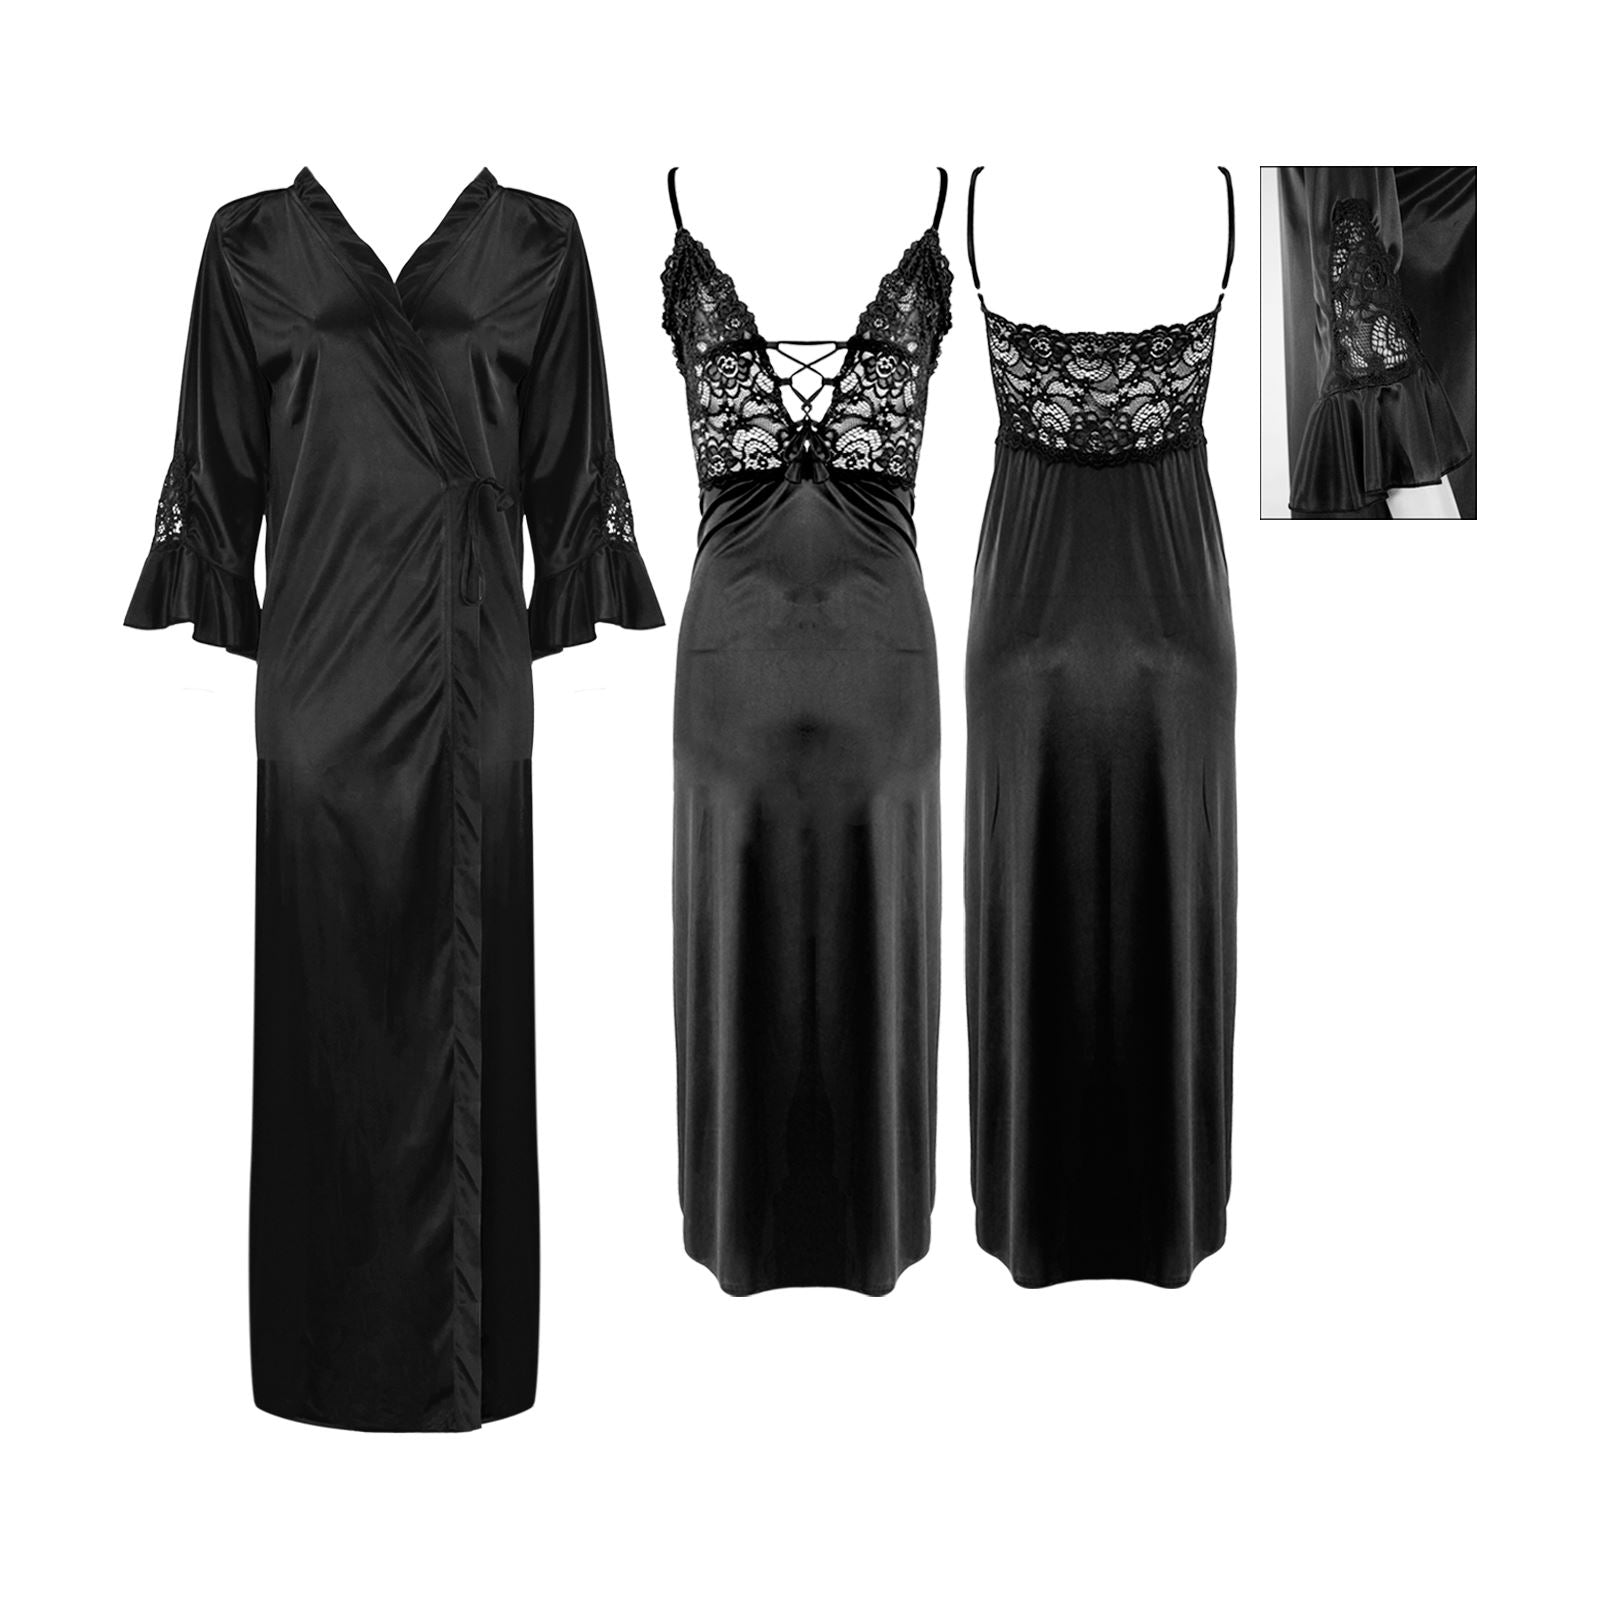 Sexy Corset Satin Short Nighty with Long Robe [colour]- Hautie UK, #Nightfashion | #Underfashion